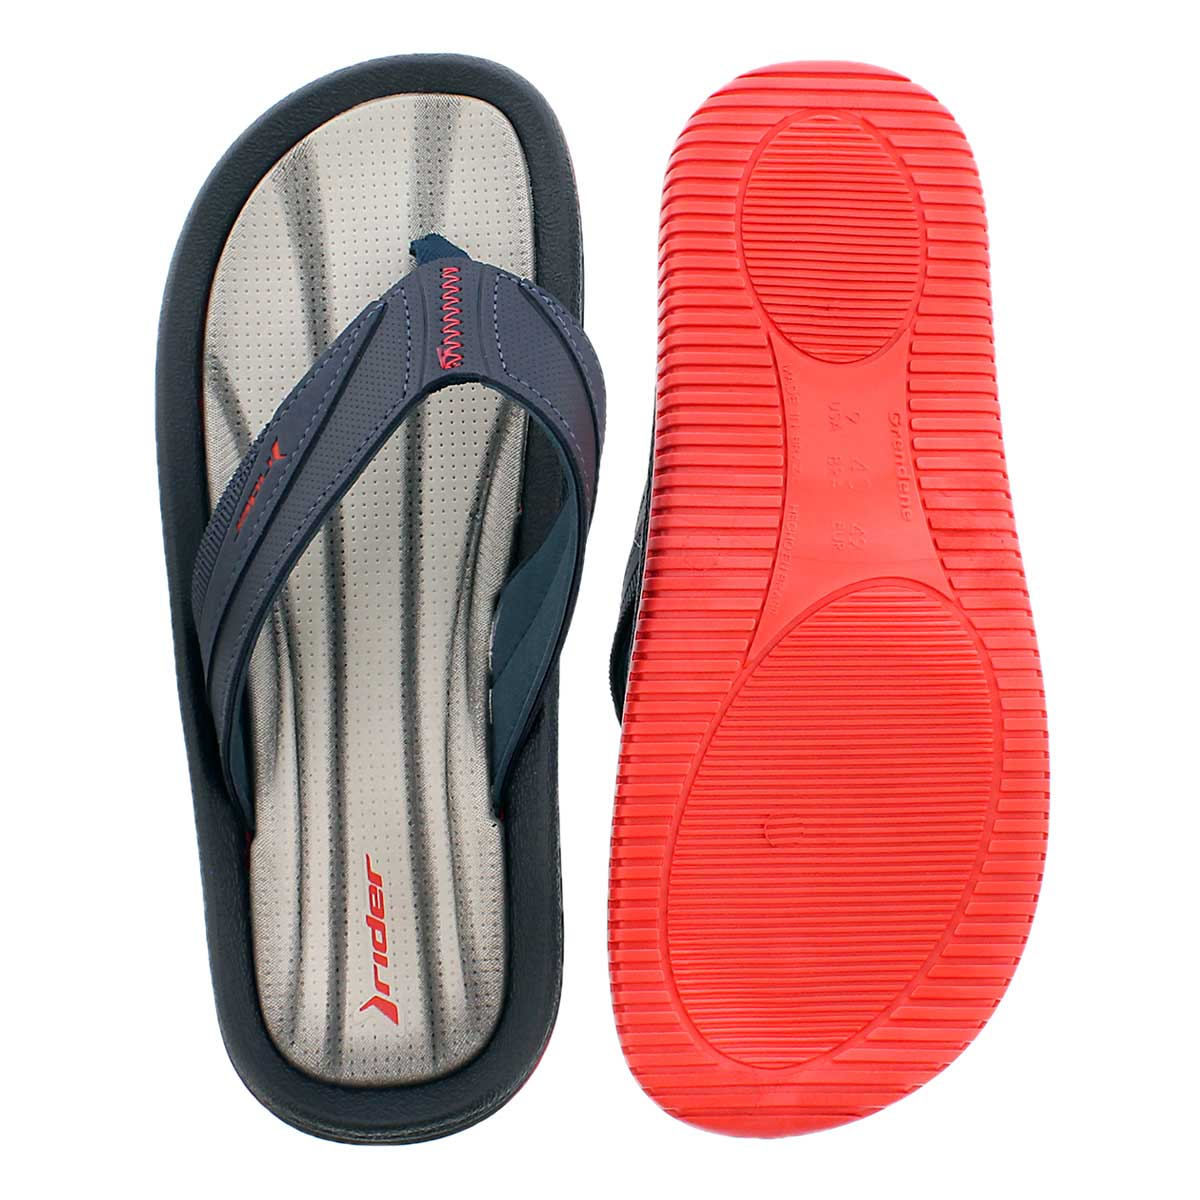 Mns Dunas XI blk/gry/red flip flop